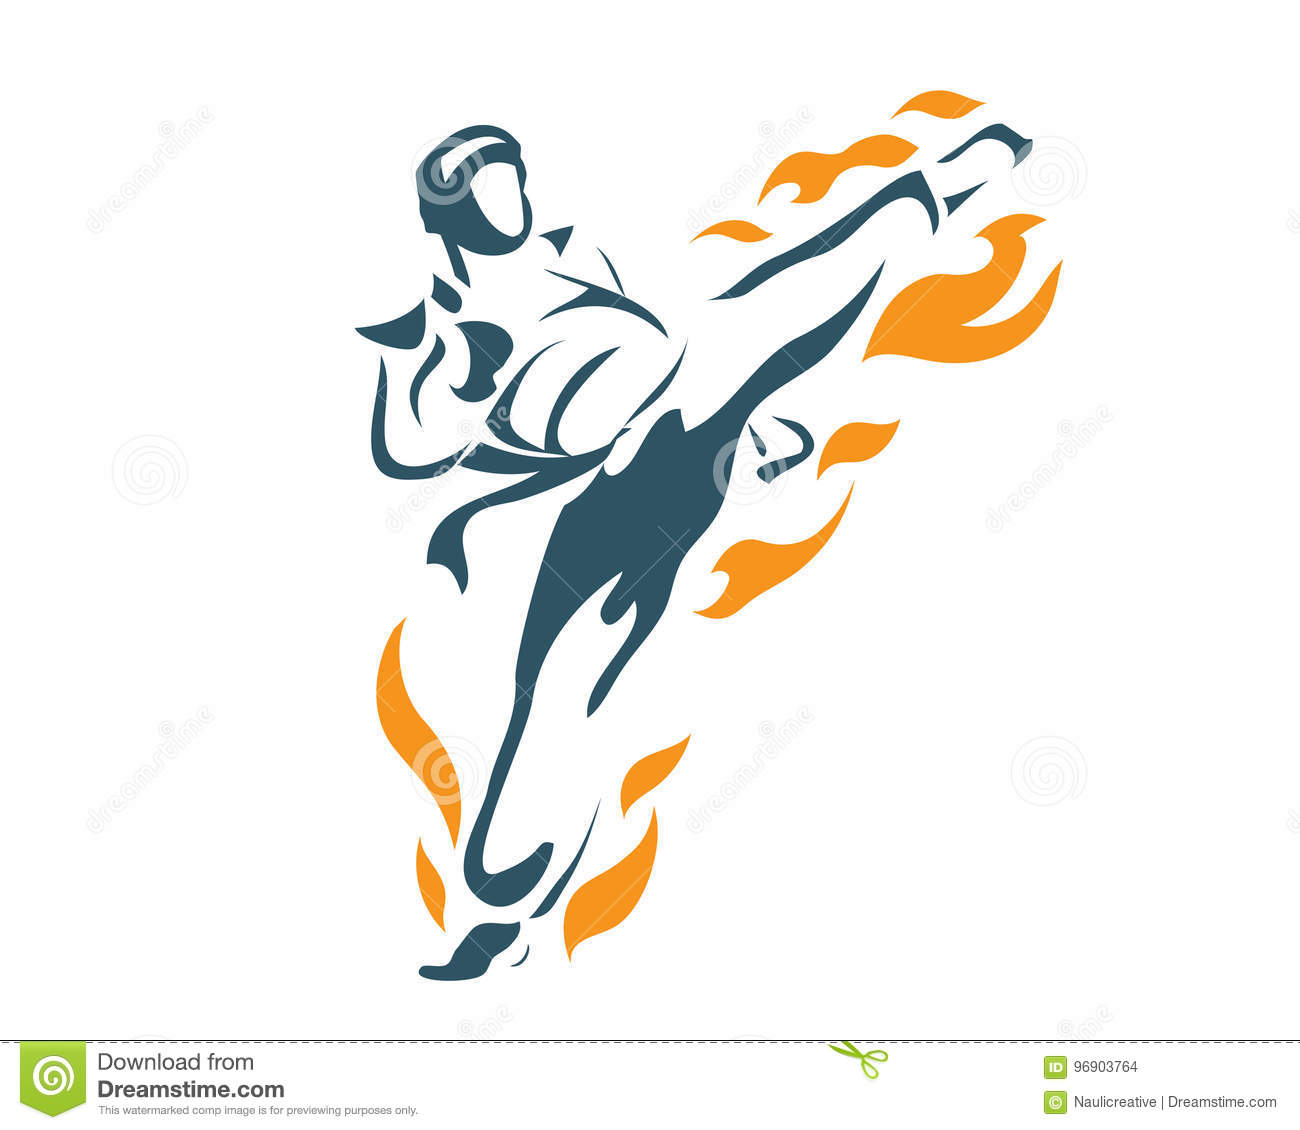 Aggressive Deadly Flying Front Kick Flame Taekwondo Athlete In Action Logo